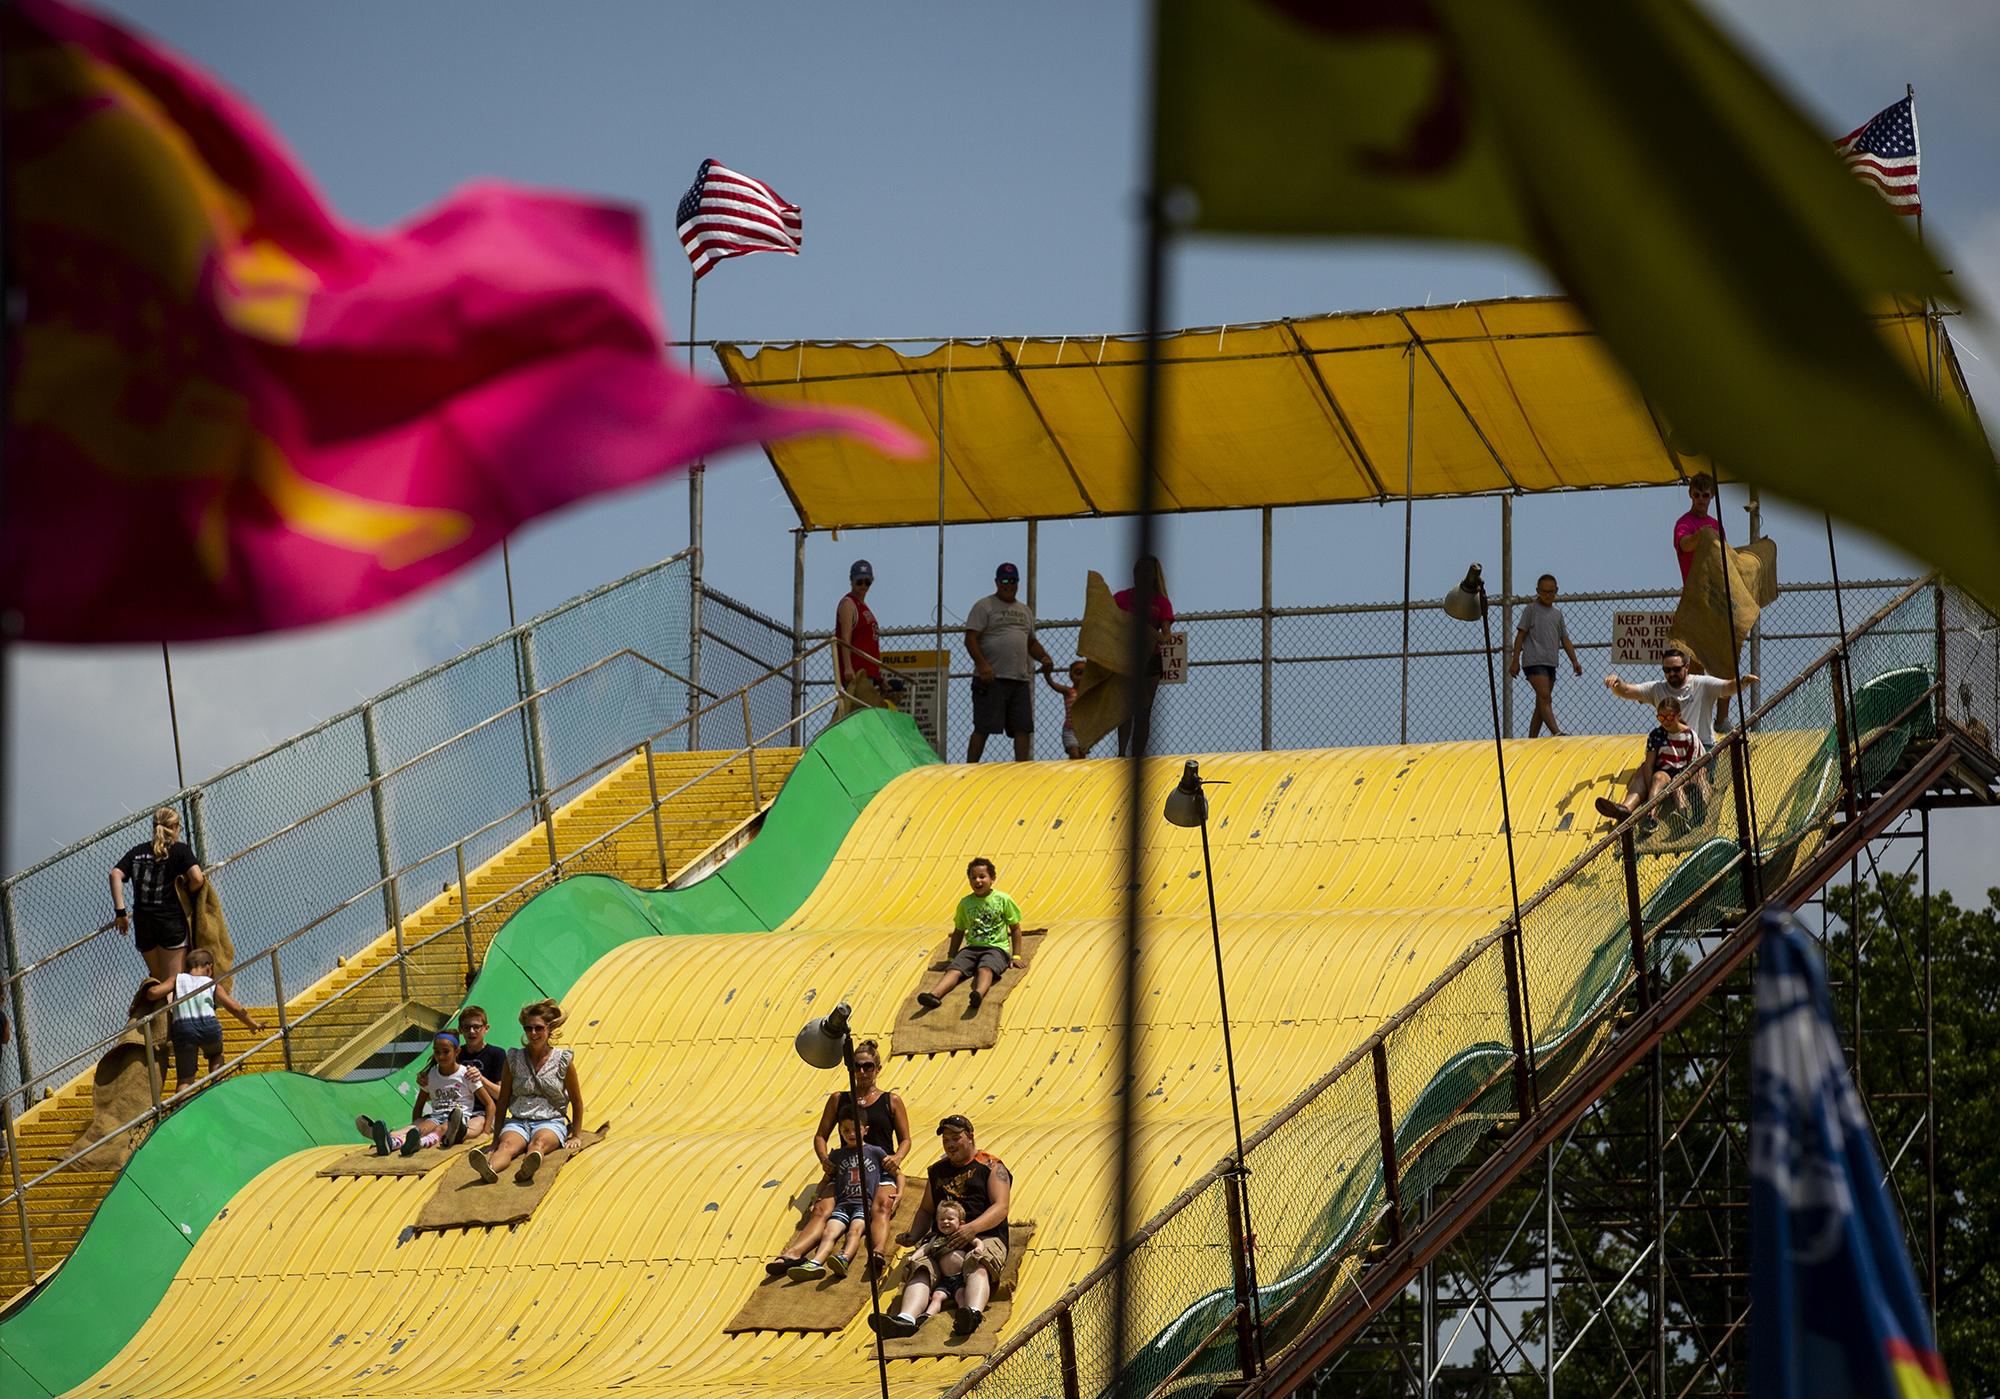 People descend the Giant Slide at the Illinois State Fair Saturday, Aug. 11, 2018 on the fairgrounds in Springfield, Ill. [Rich Saal/The State Journal-Register]